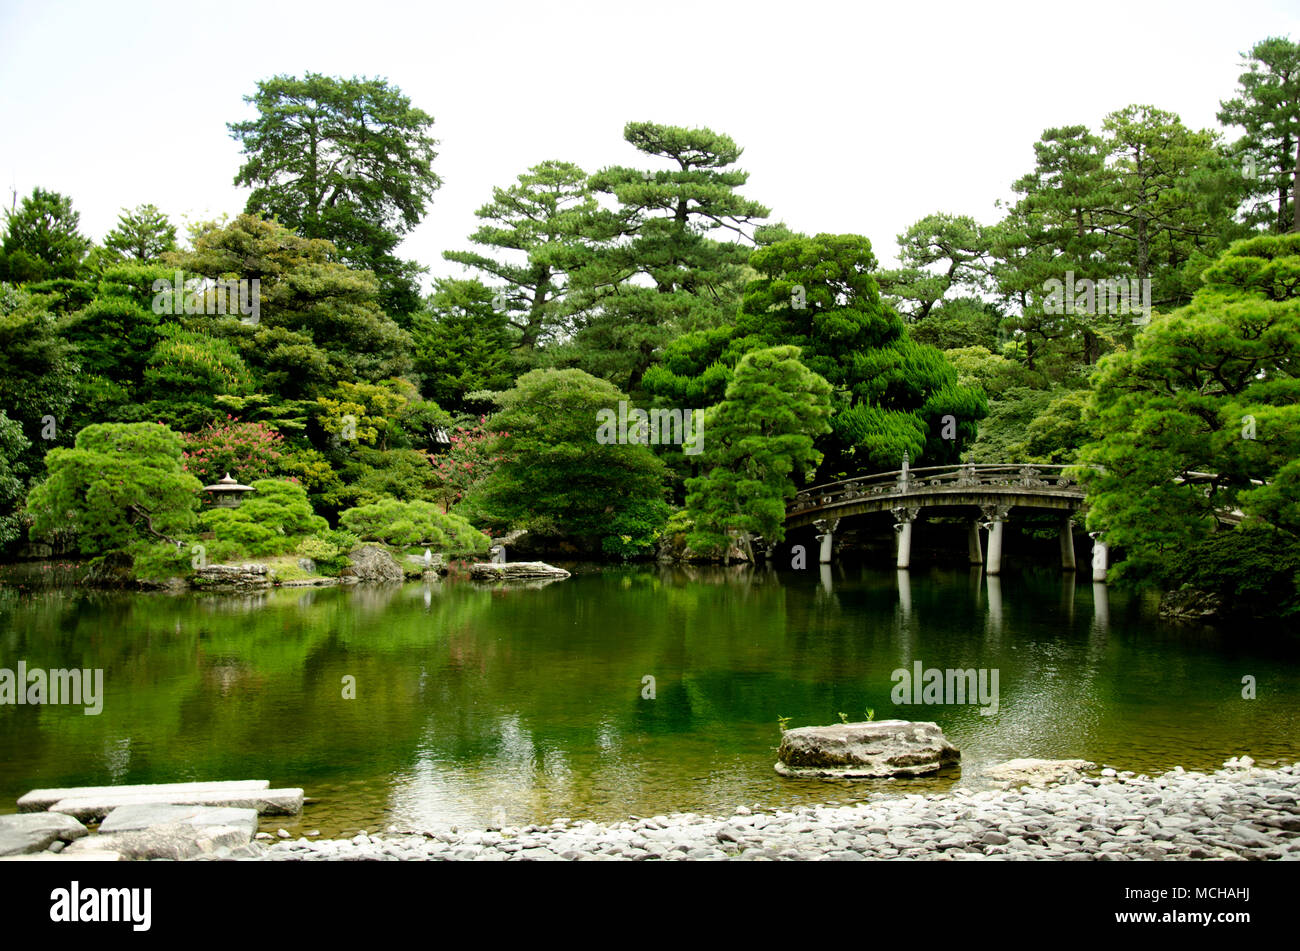 Japanese garden, Imperial palace in Kyoto - Stock Image